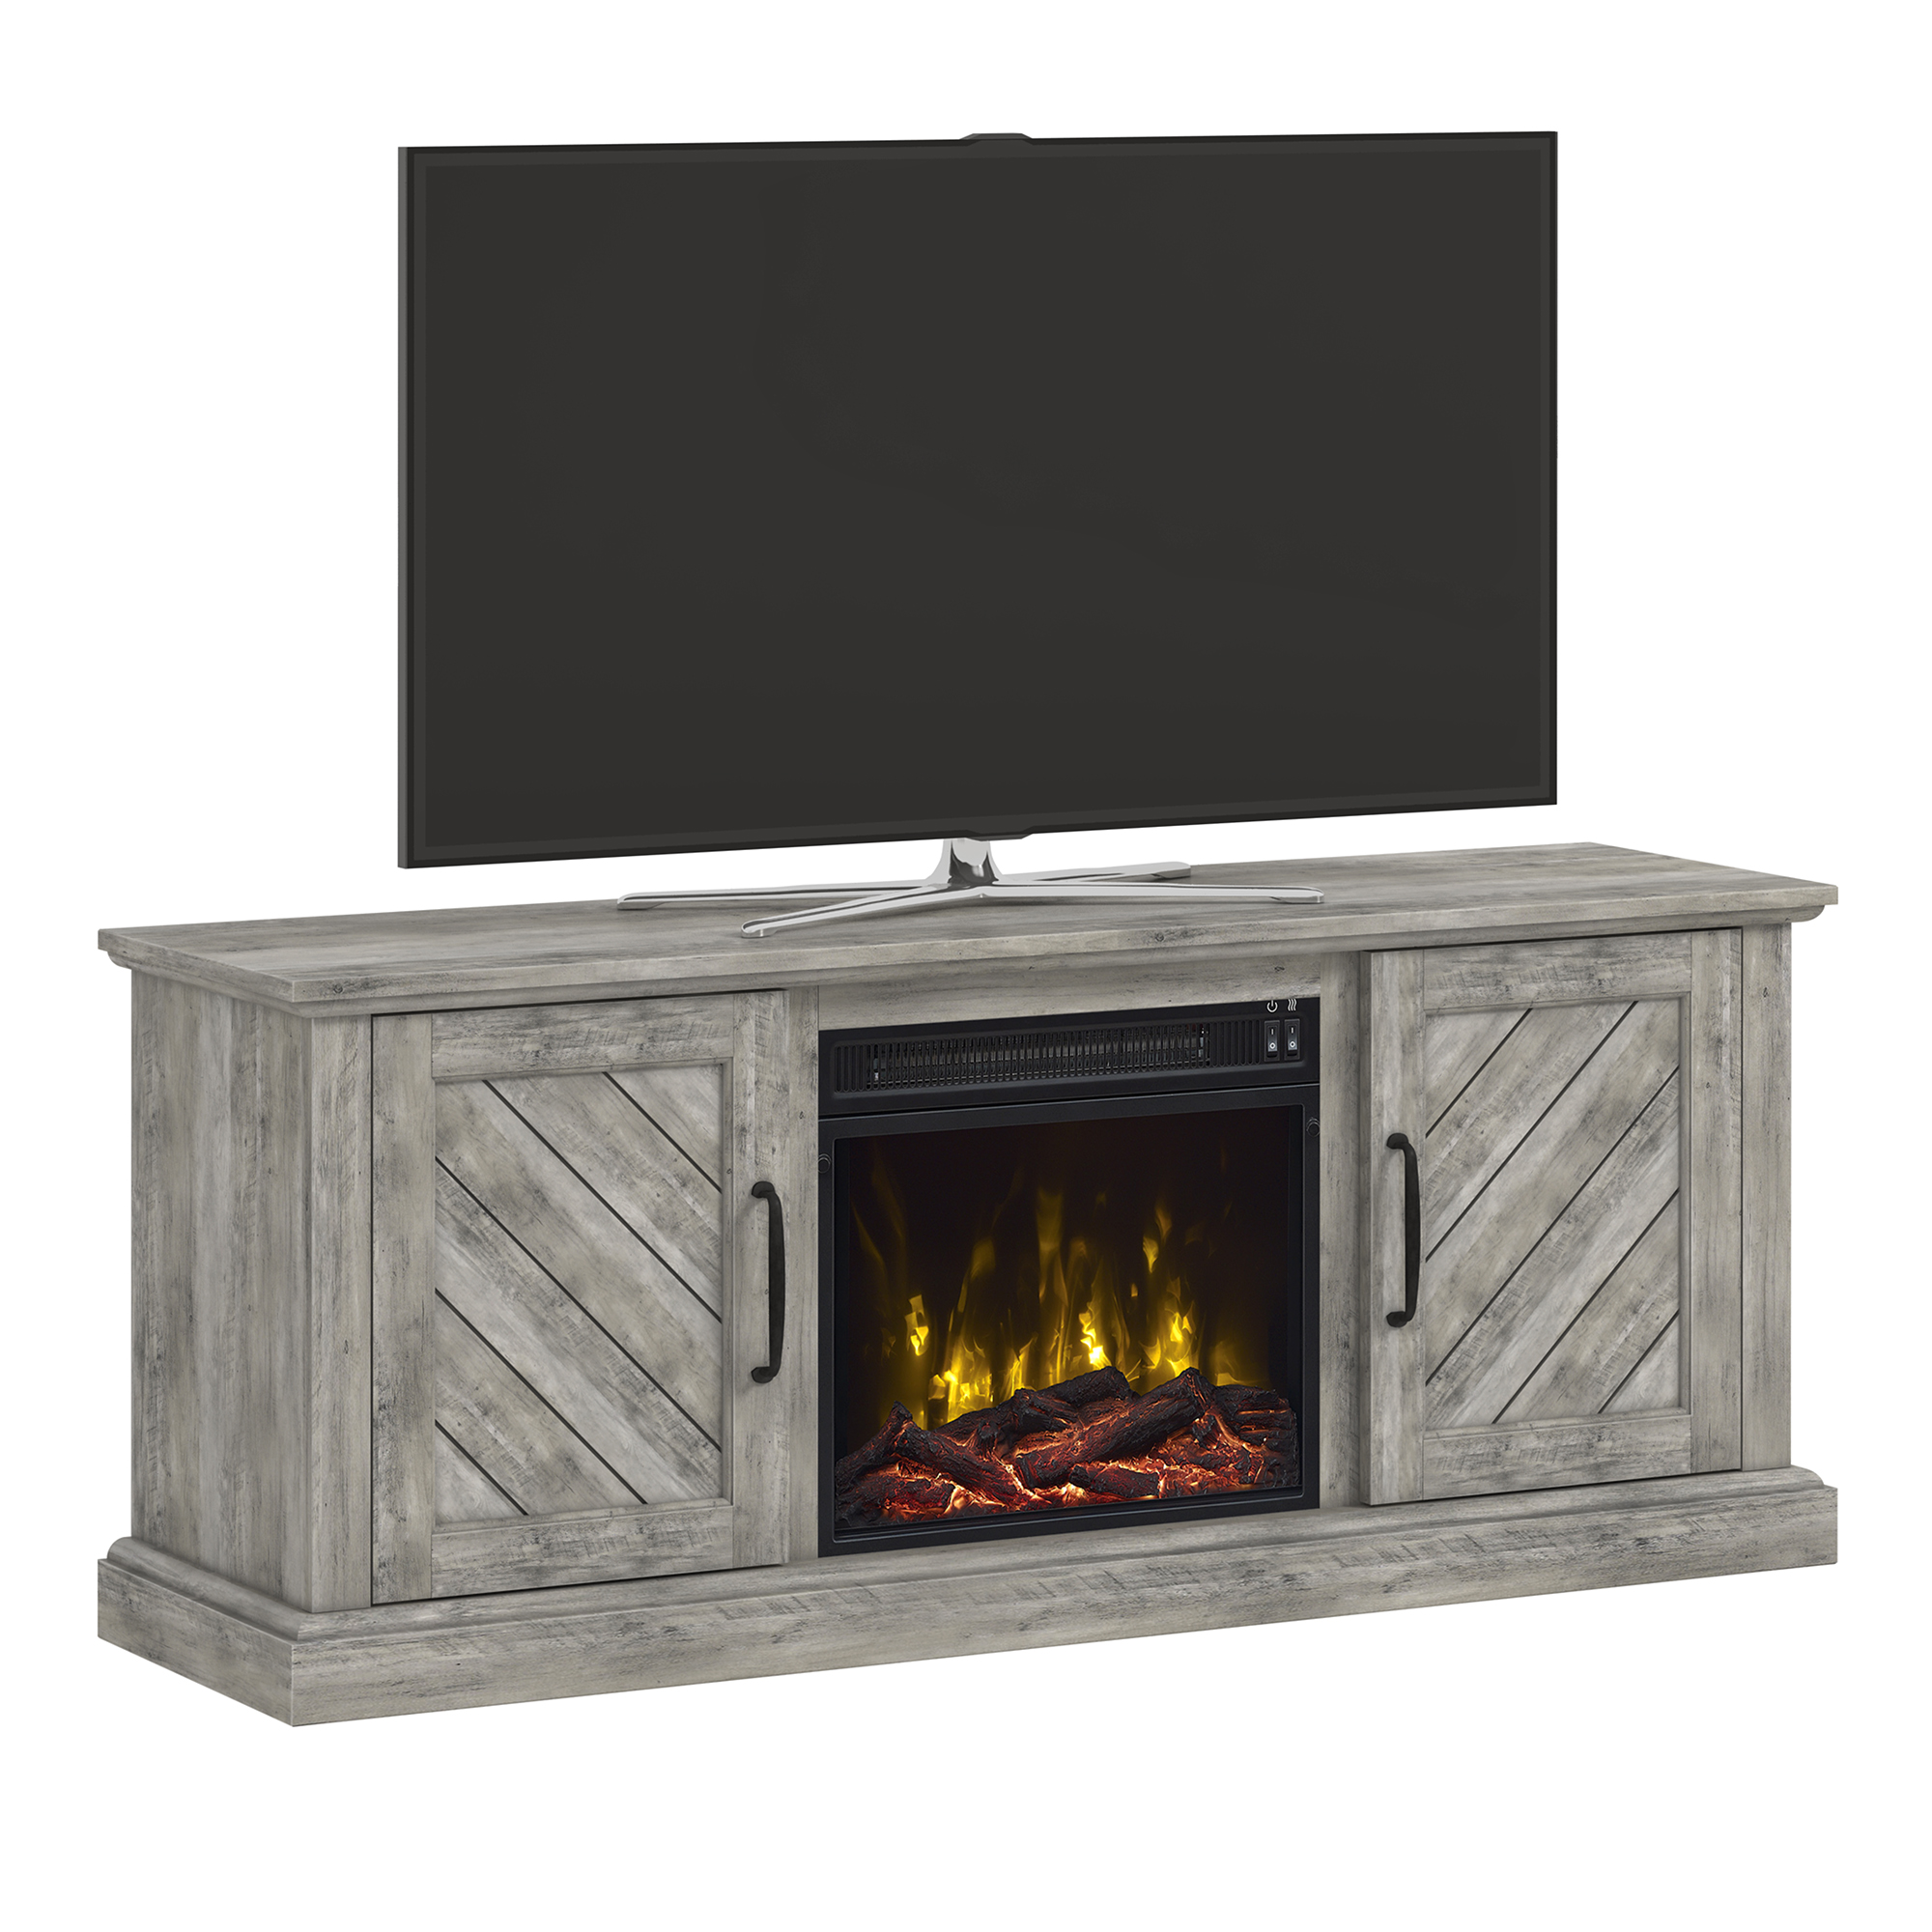 "Paoli Valley Pine TV Stand for TVs up to 60"" with Electric Fireplace"